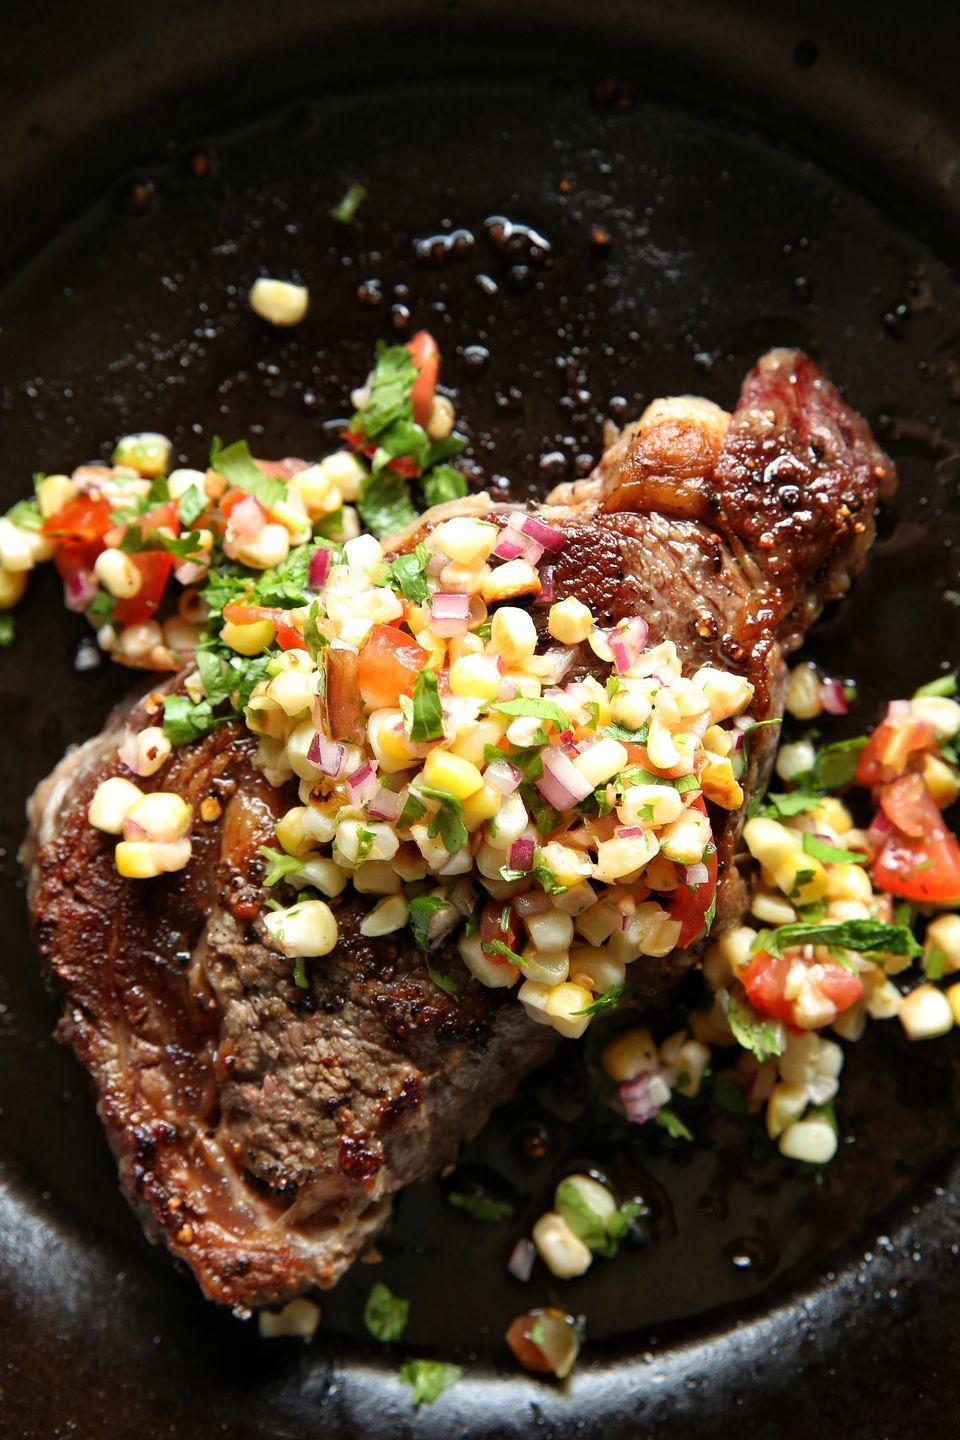 """<p>Our tastebuds are telling us that summer ain't over yet.</p><p>Get the recipe from <a href=""""https://www.delish.com/cooking/recipe-ideas/recipes/a48917/rib-eye-steak-with-grilled-corn-salad-recipe/"""" rel=""""nofollow noopener"""" target=""""_blank"""" data-ylk=""""slk:Delish"""" class=""""link rapid-noclick-resp"""">Delish</a>.</p>"""